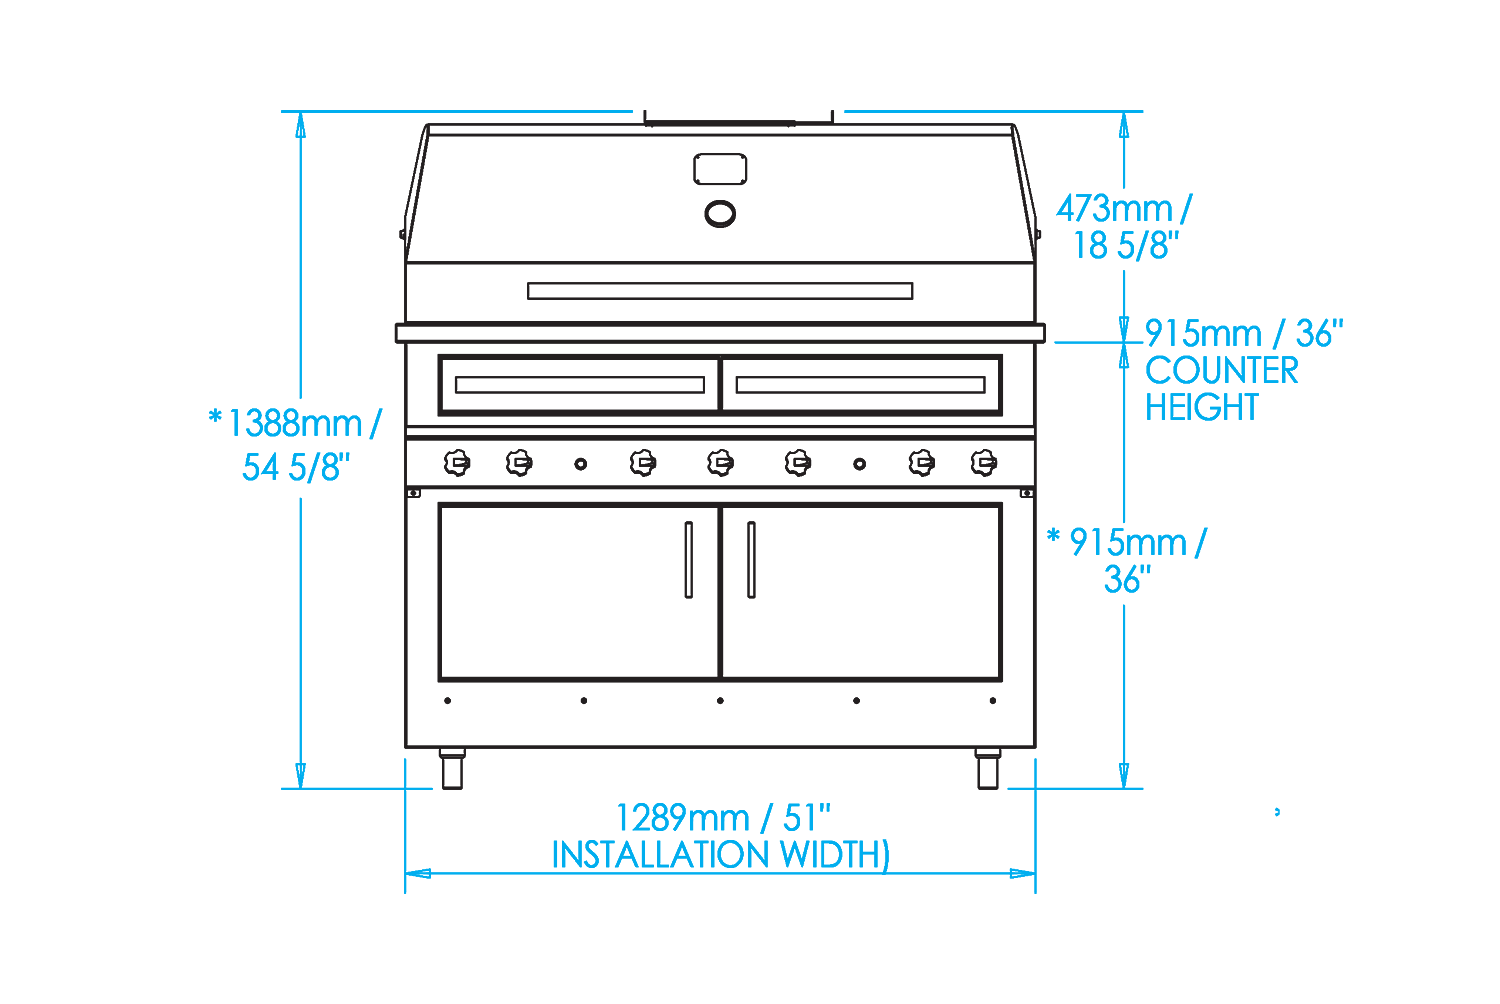 K1000 Built-in Hybrid Fire Grill Dimensions Image